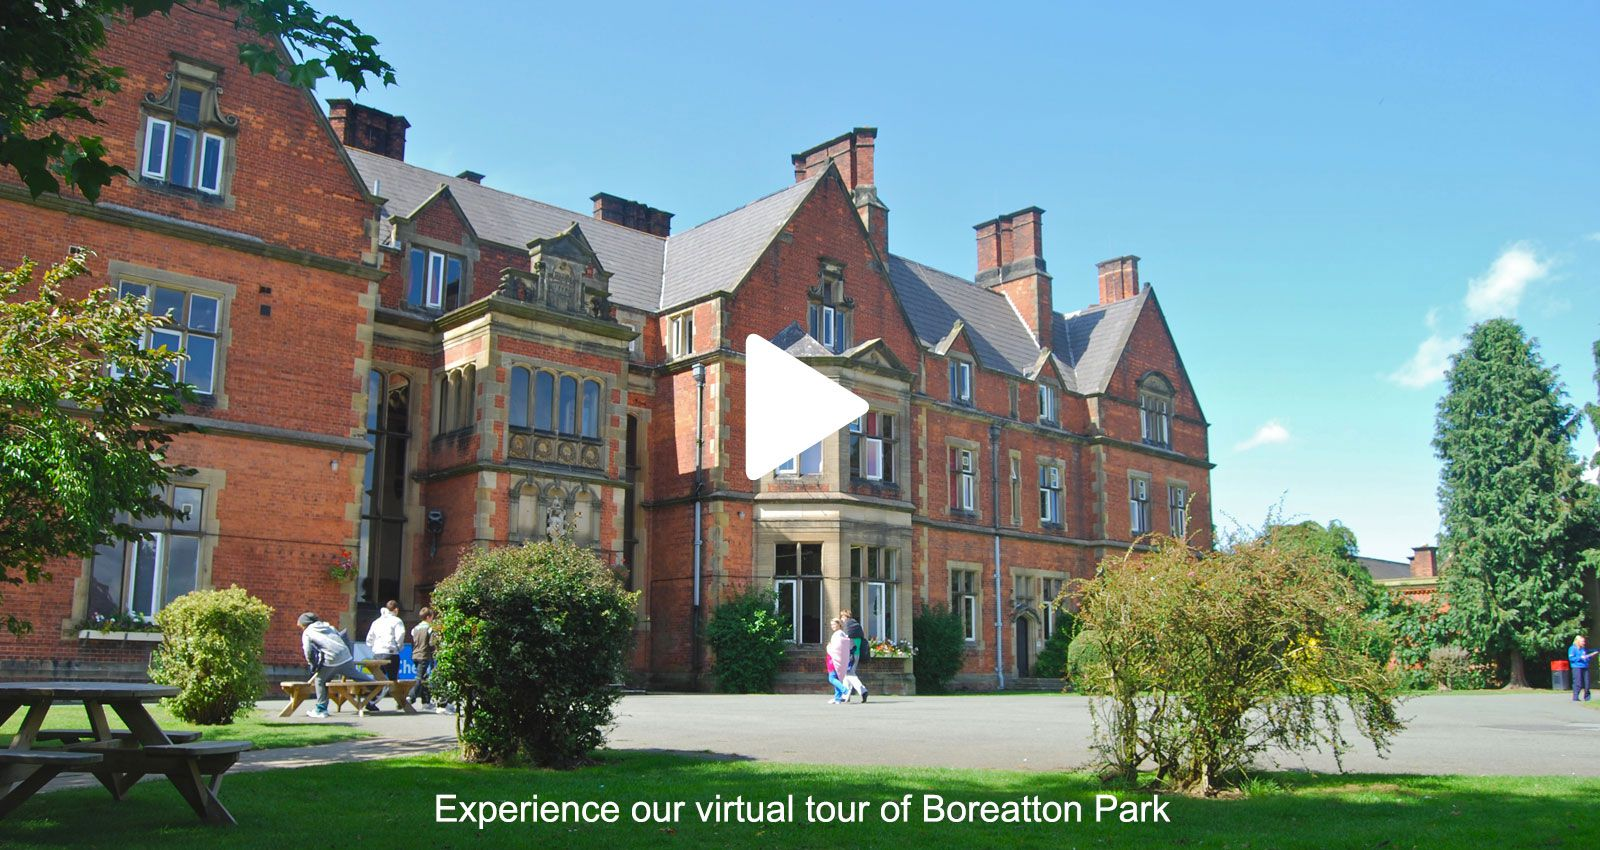 Family Adventure holidays at Boreatton Park, Shropshire